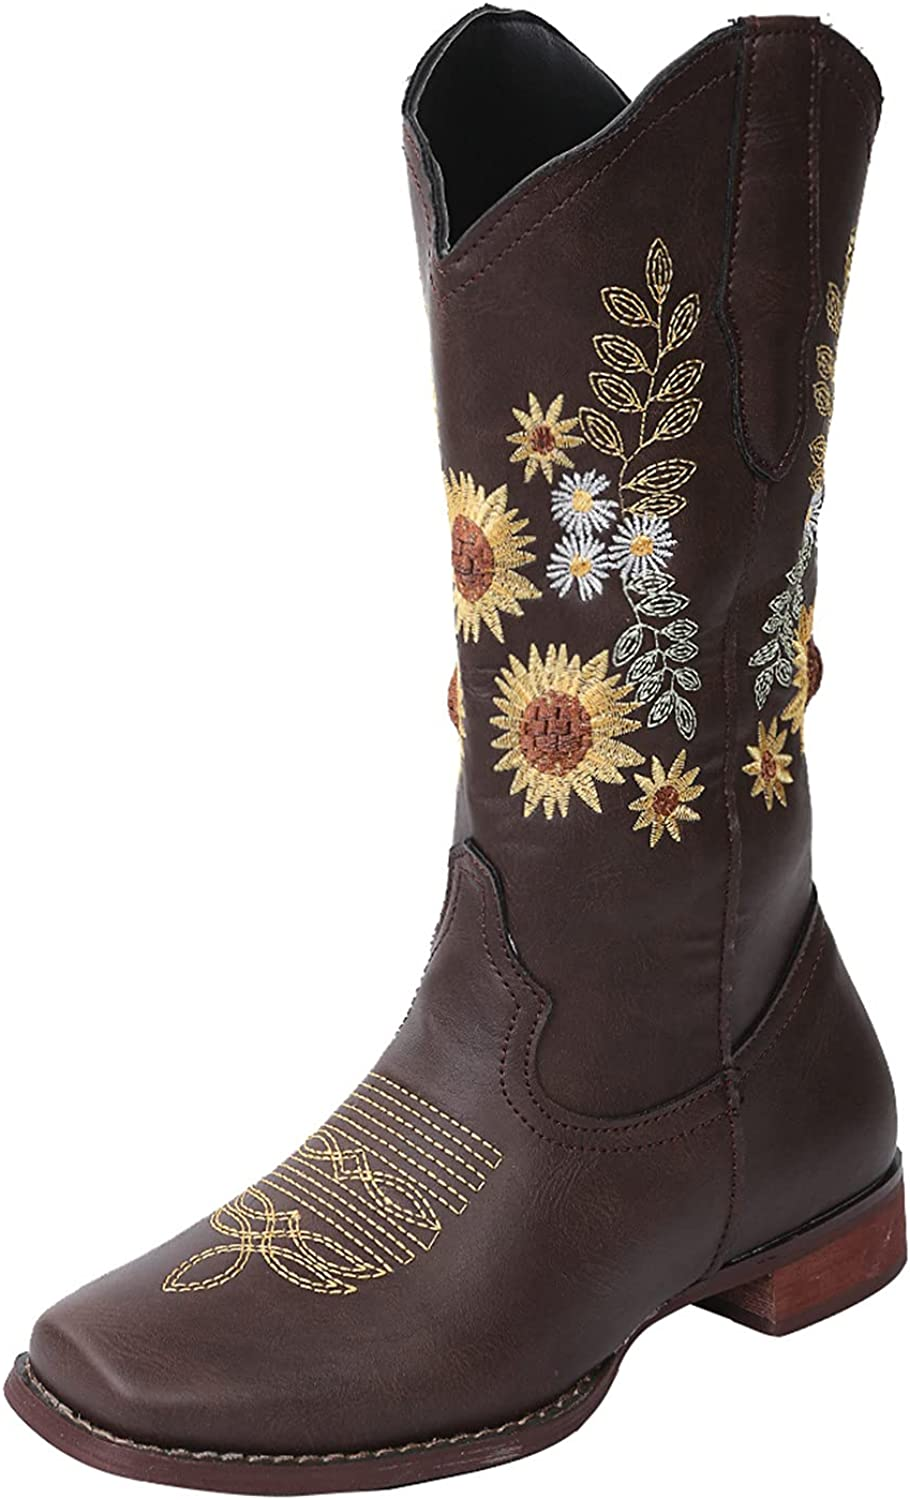 ZiSUGP Cowgirl Boots For Women Low Heel Modern Western Cowgirl Boot Wide Calf Embroidered Knee High Boots